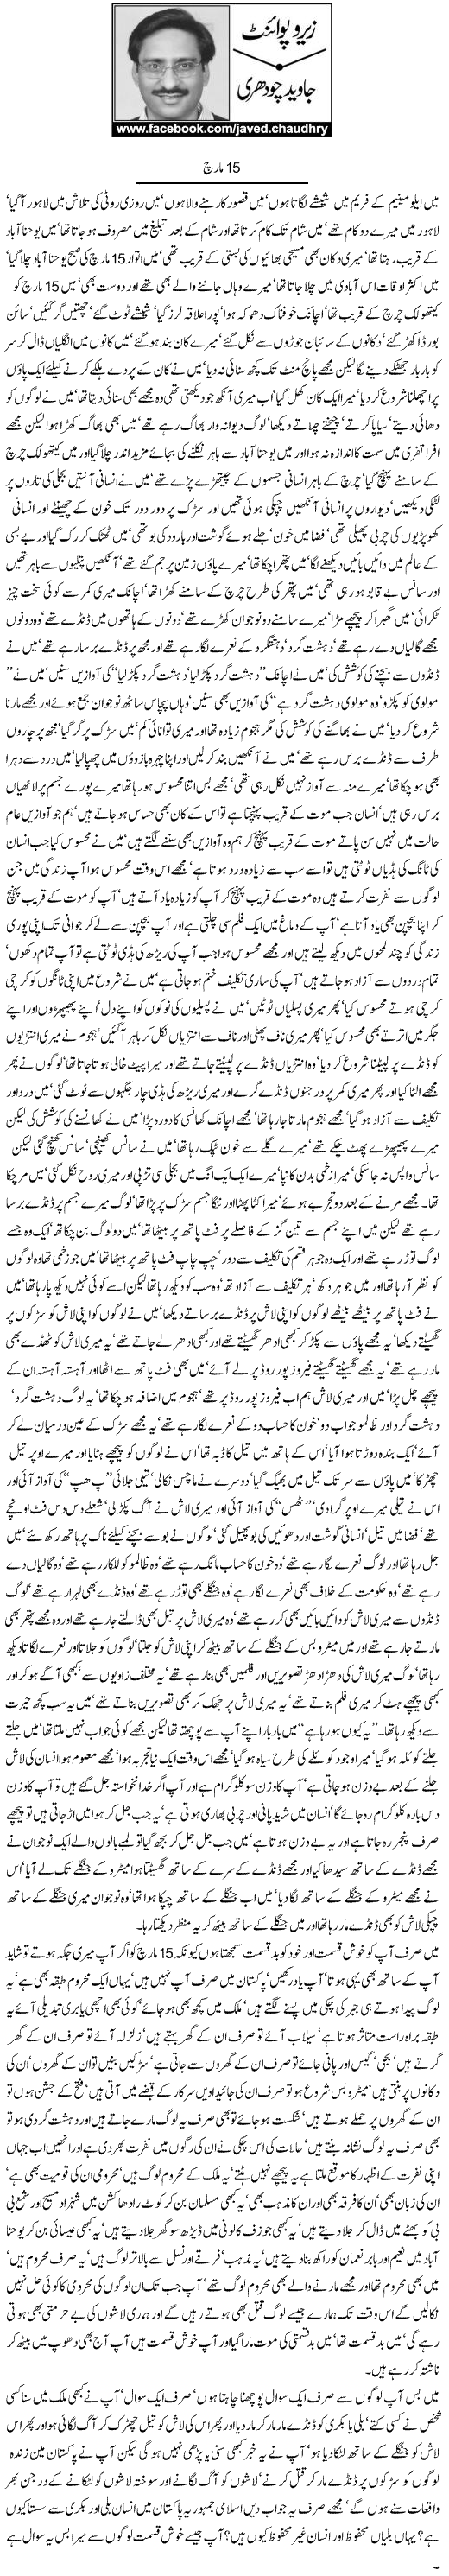 15 March - Zero Point By Javed Chaudhry - Pakfunny